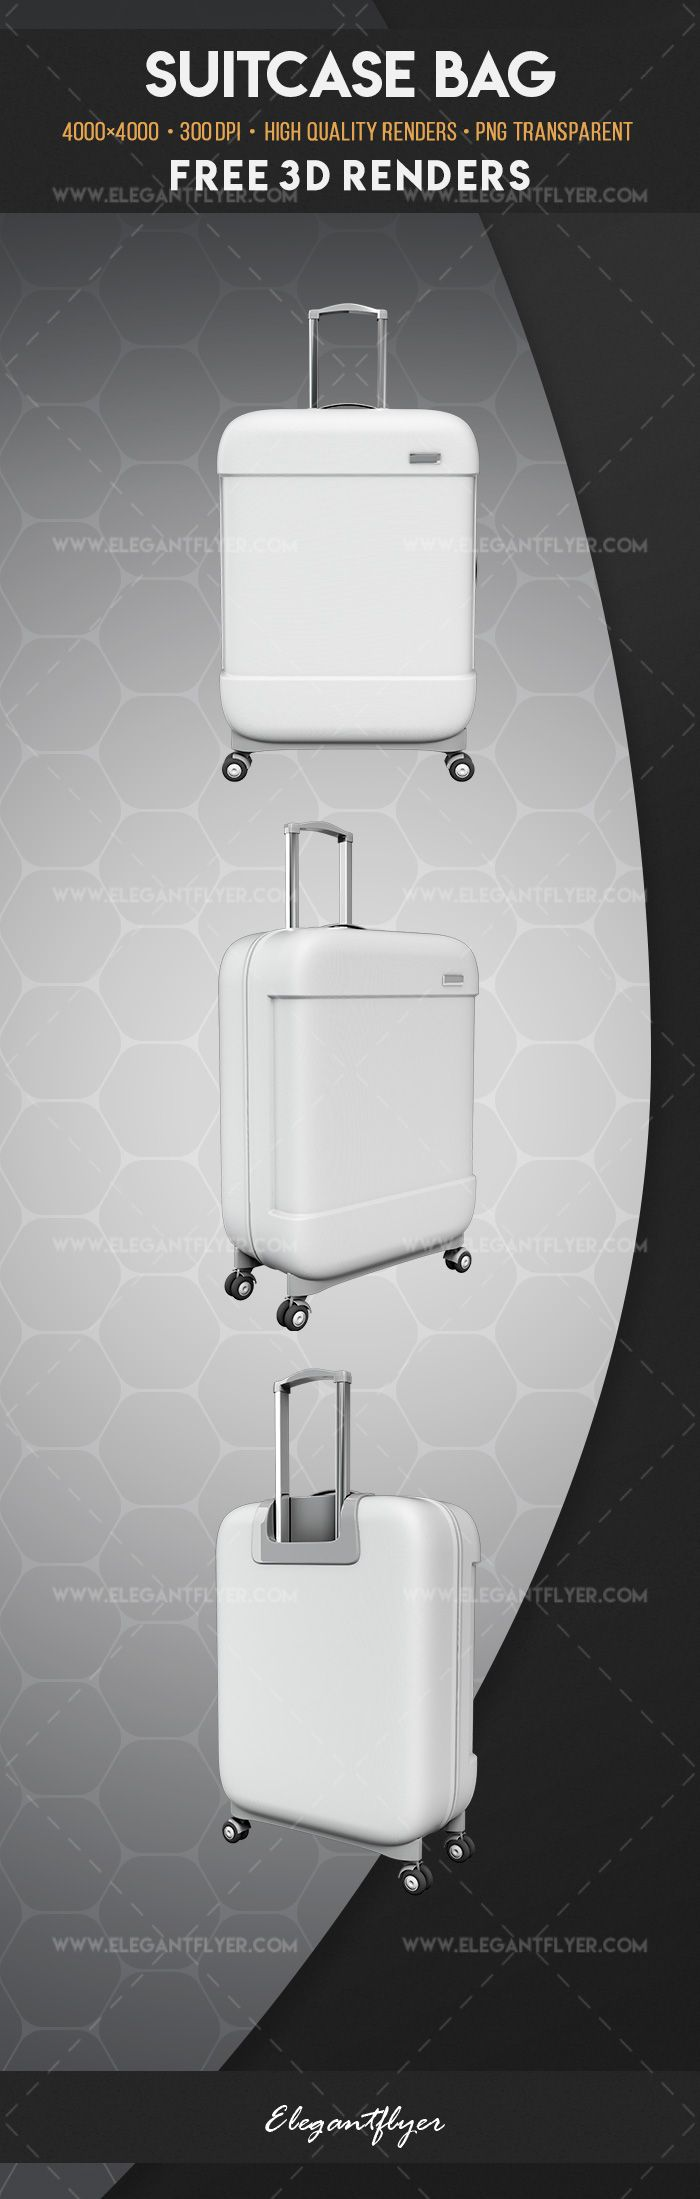 Suitcase Bag – Free 3d Render Templates